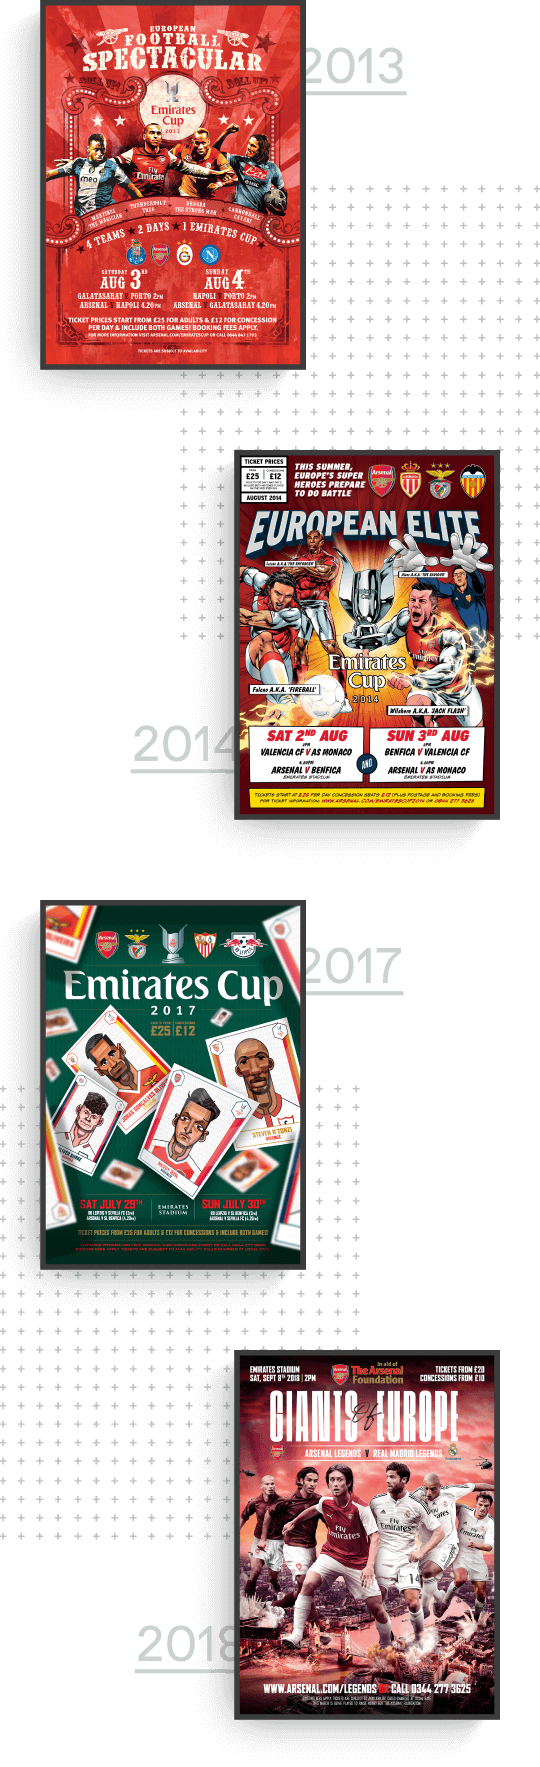 Emirates Cup 2013 promotion poster done with three players